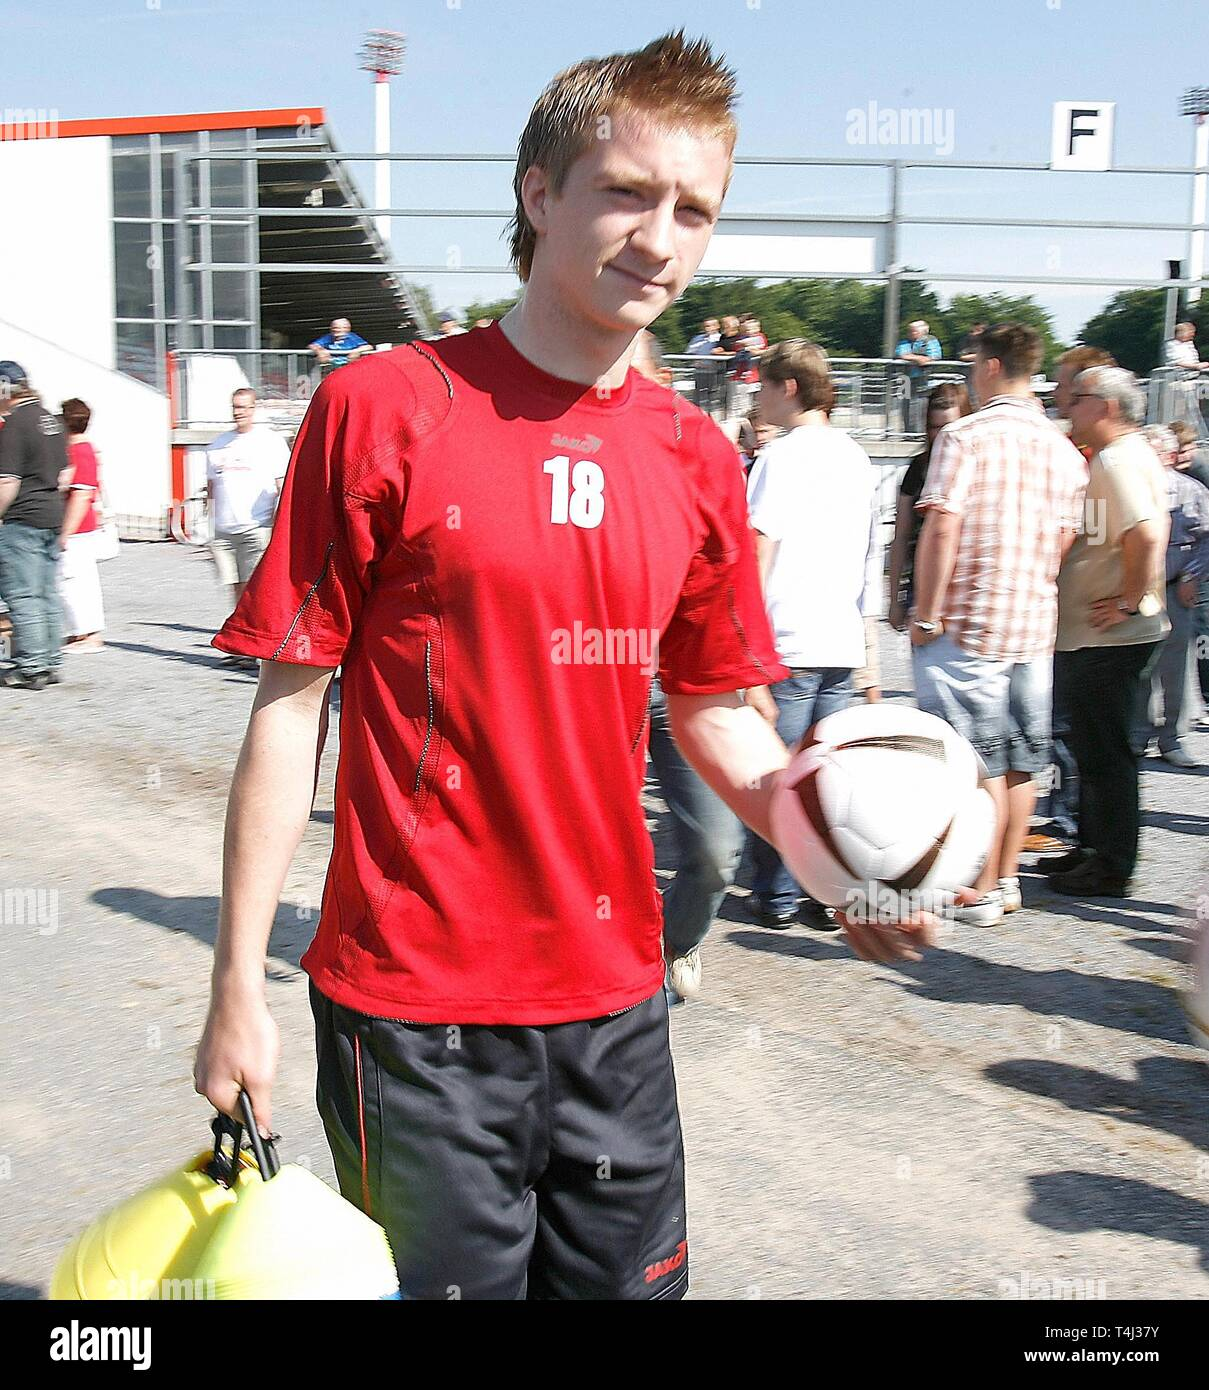 Marco REUS, RW Ahlen, on the way to training, half figure, half figure, portrait format, season 2008/2009 football, Marco REUS as a young player for RW Ahlen. | usage worldwide - Stock Image